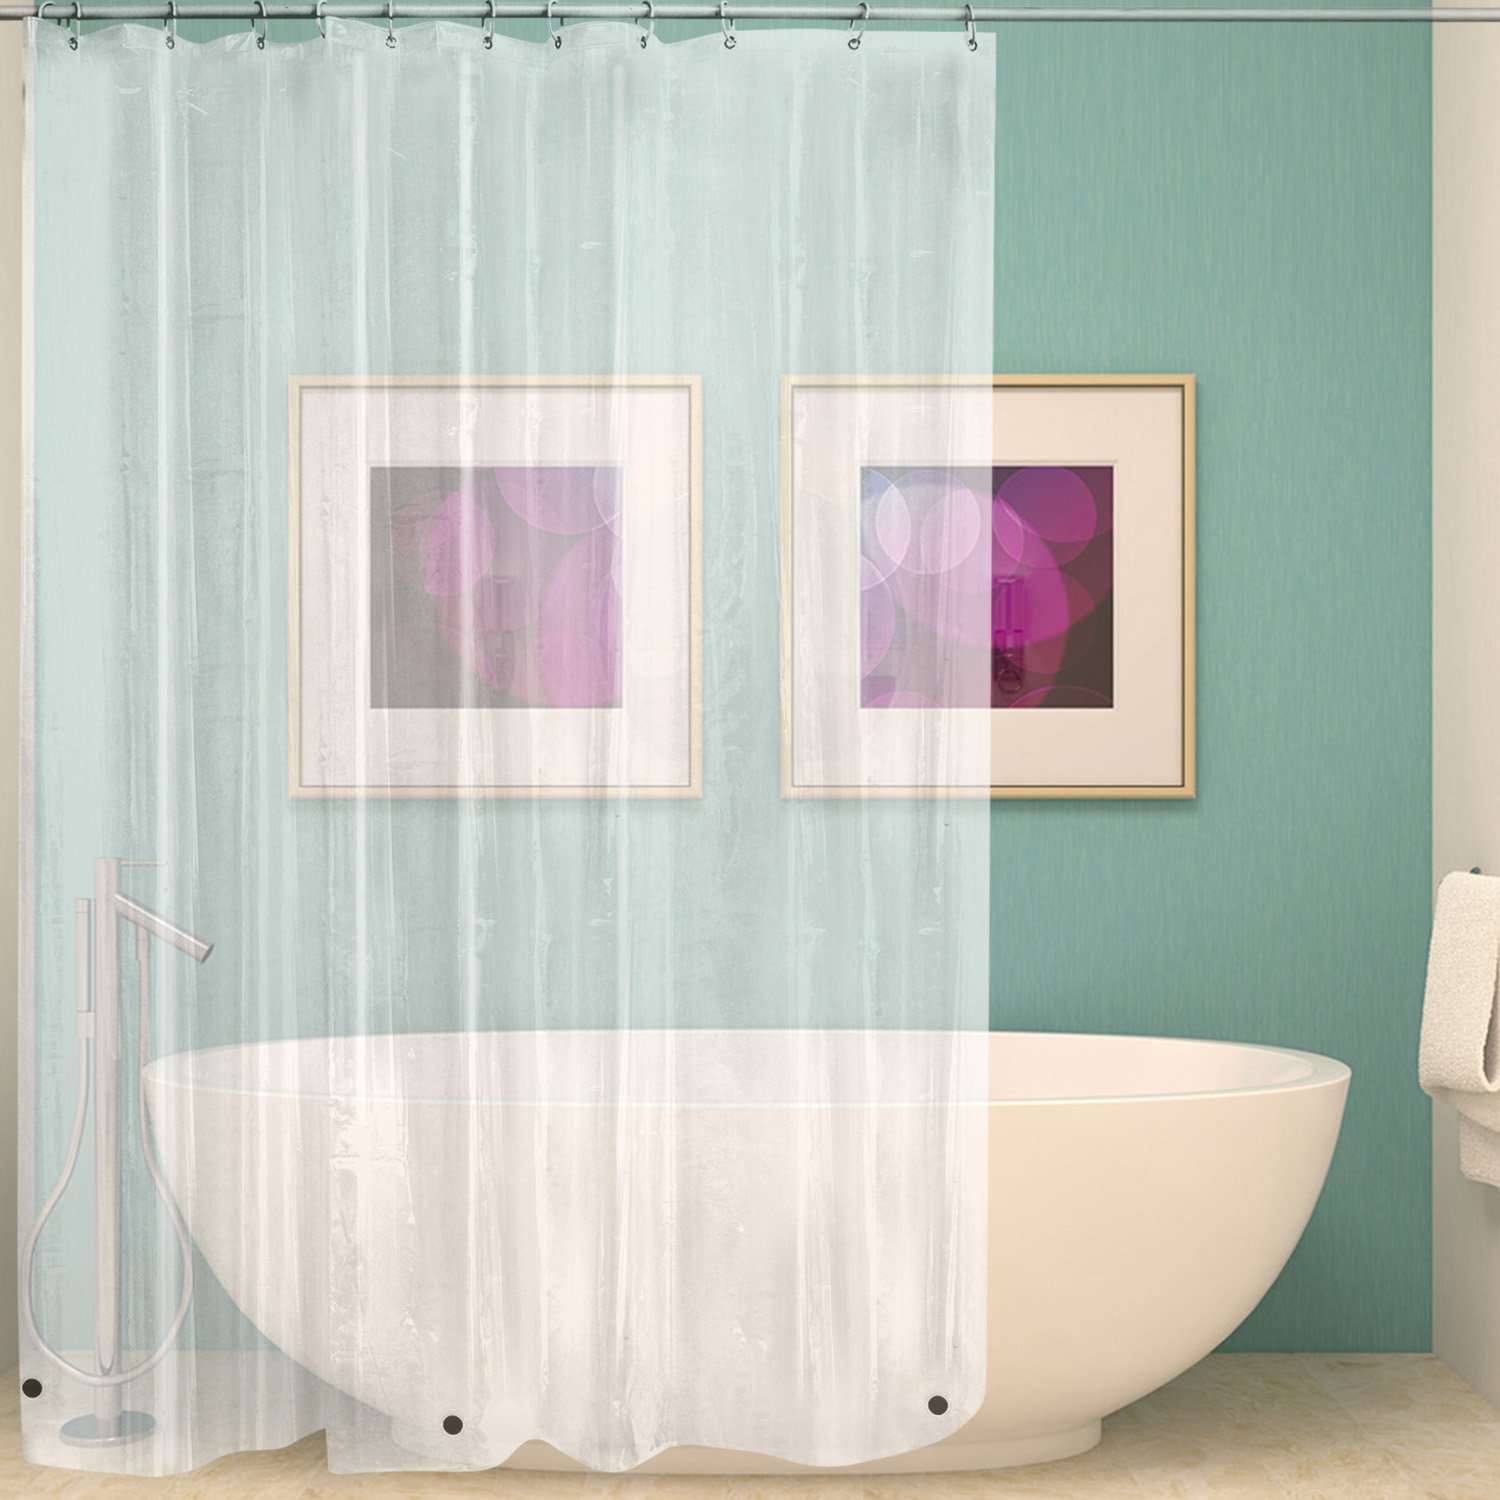 Wimaha Clear Shower Curtain Liner 72x72, Waterproof Shower Liner Mildew  Resistant With Heavy Duty Magnets